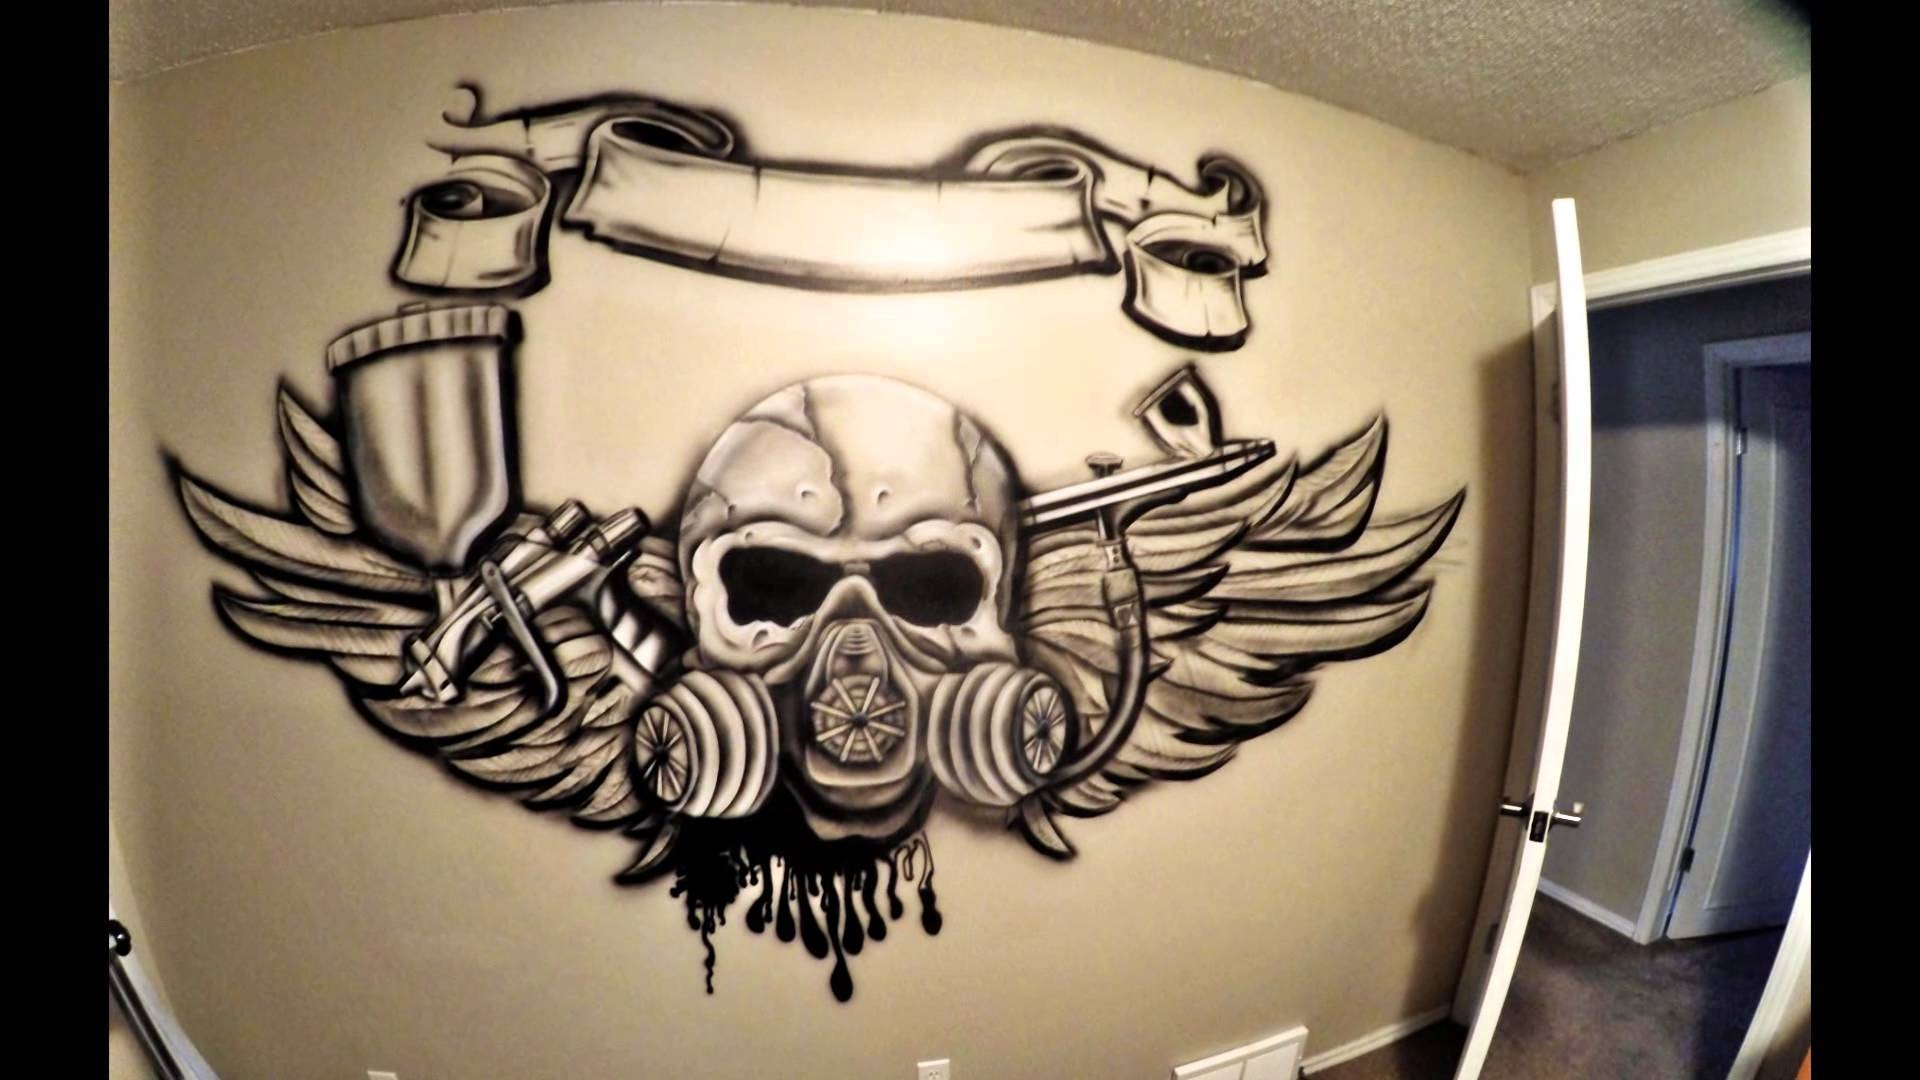 Airbrush My Bedroom Wall – Youtube For Latest Airbrush Wall Art (View 3 of 20)